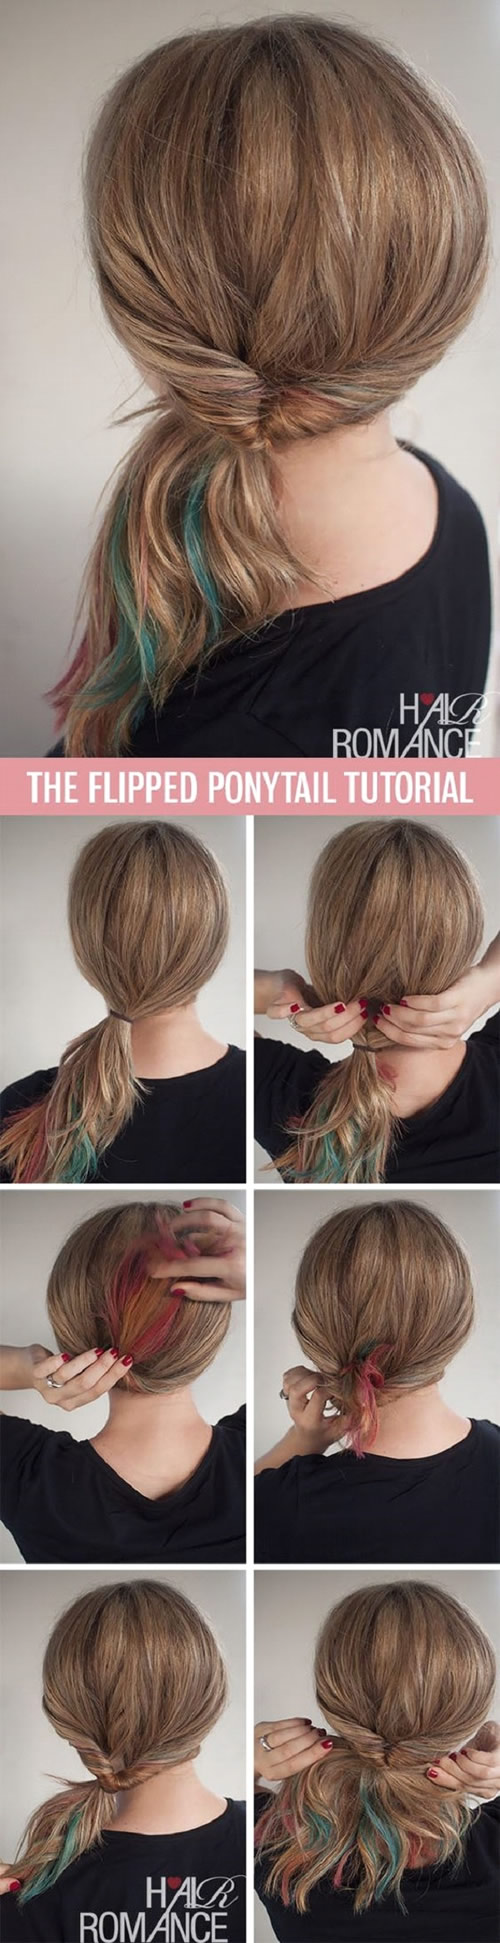 Flipped Ponytail Hairstyle